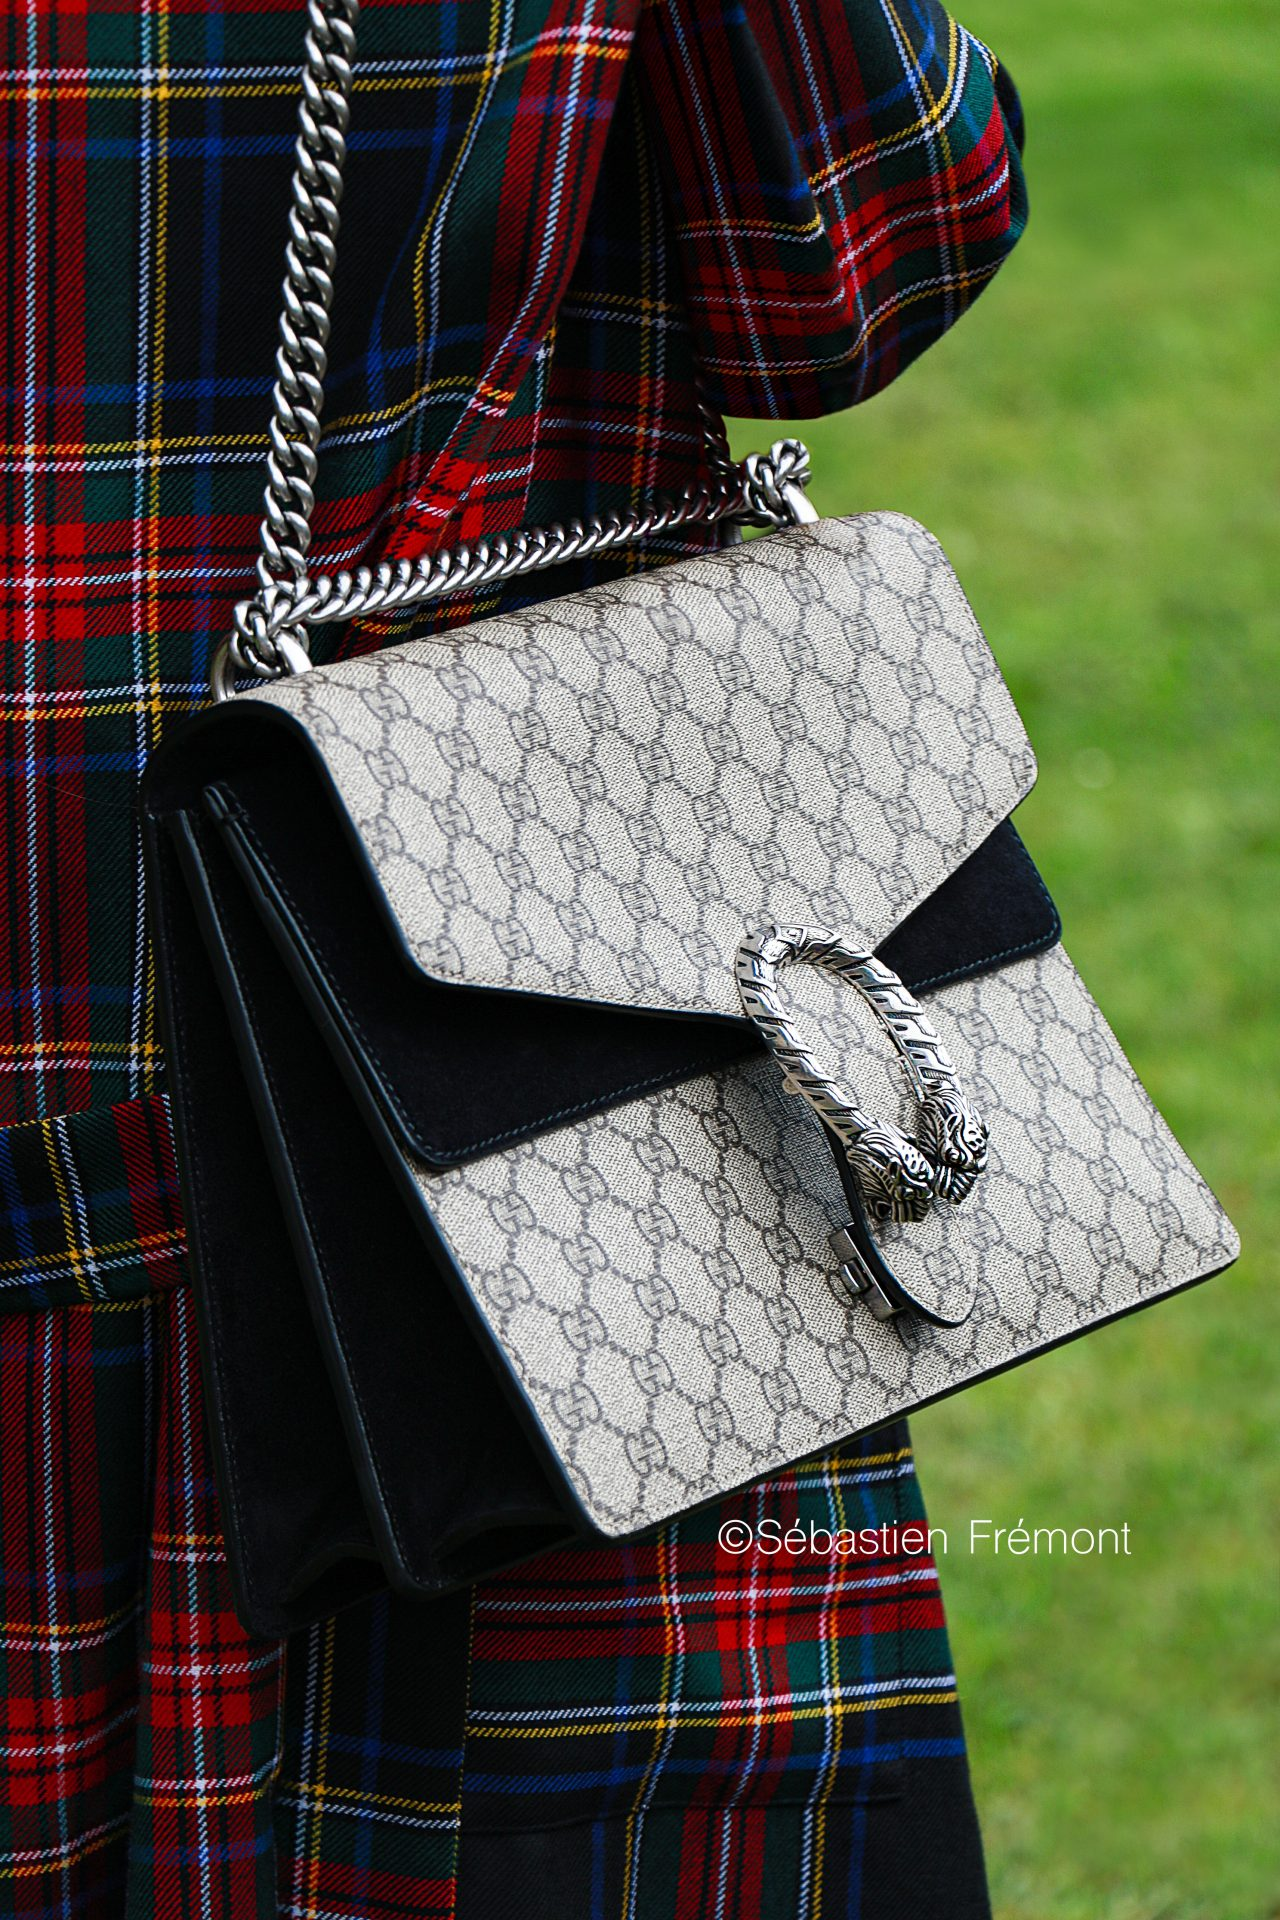 French Photographer Fashion Photography Dionysus Gucci Bag / Manon Durst